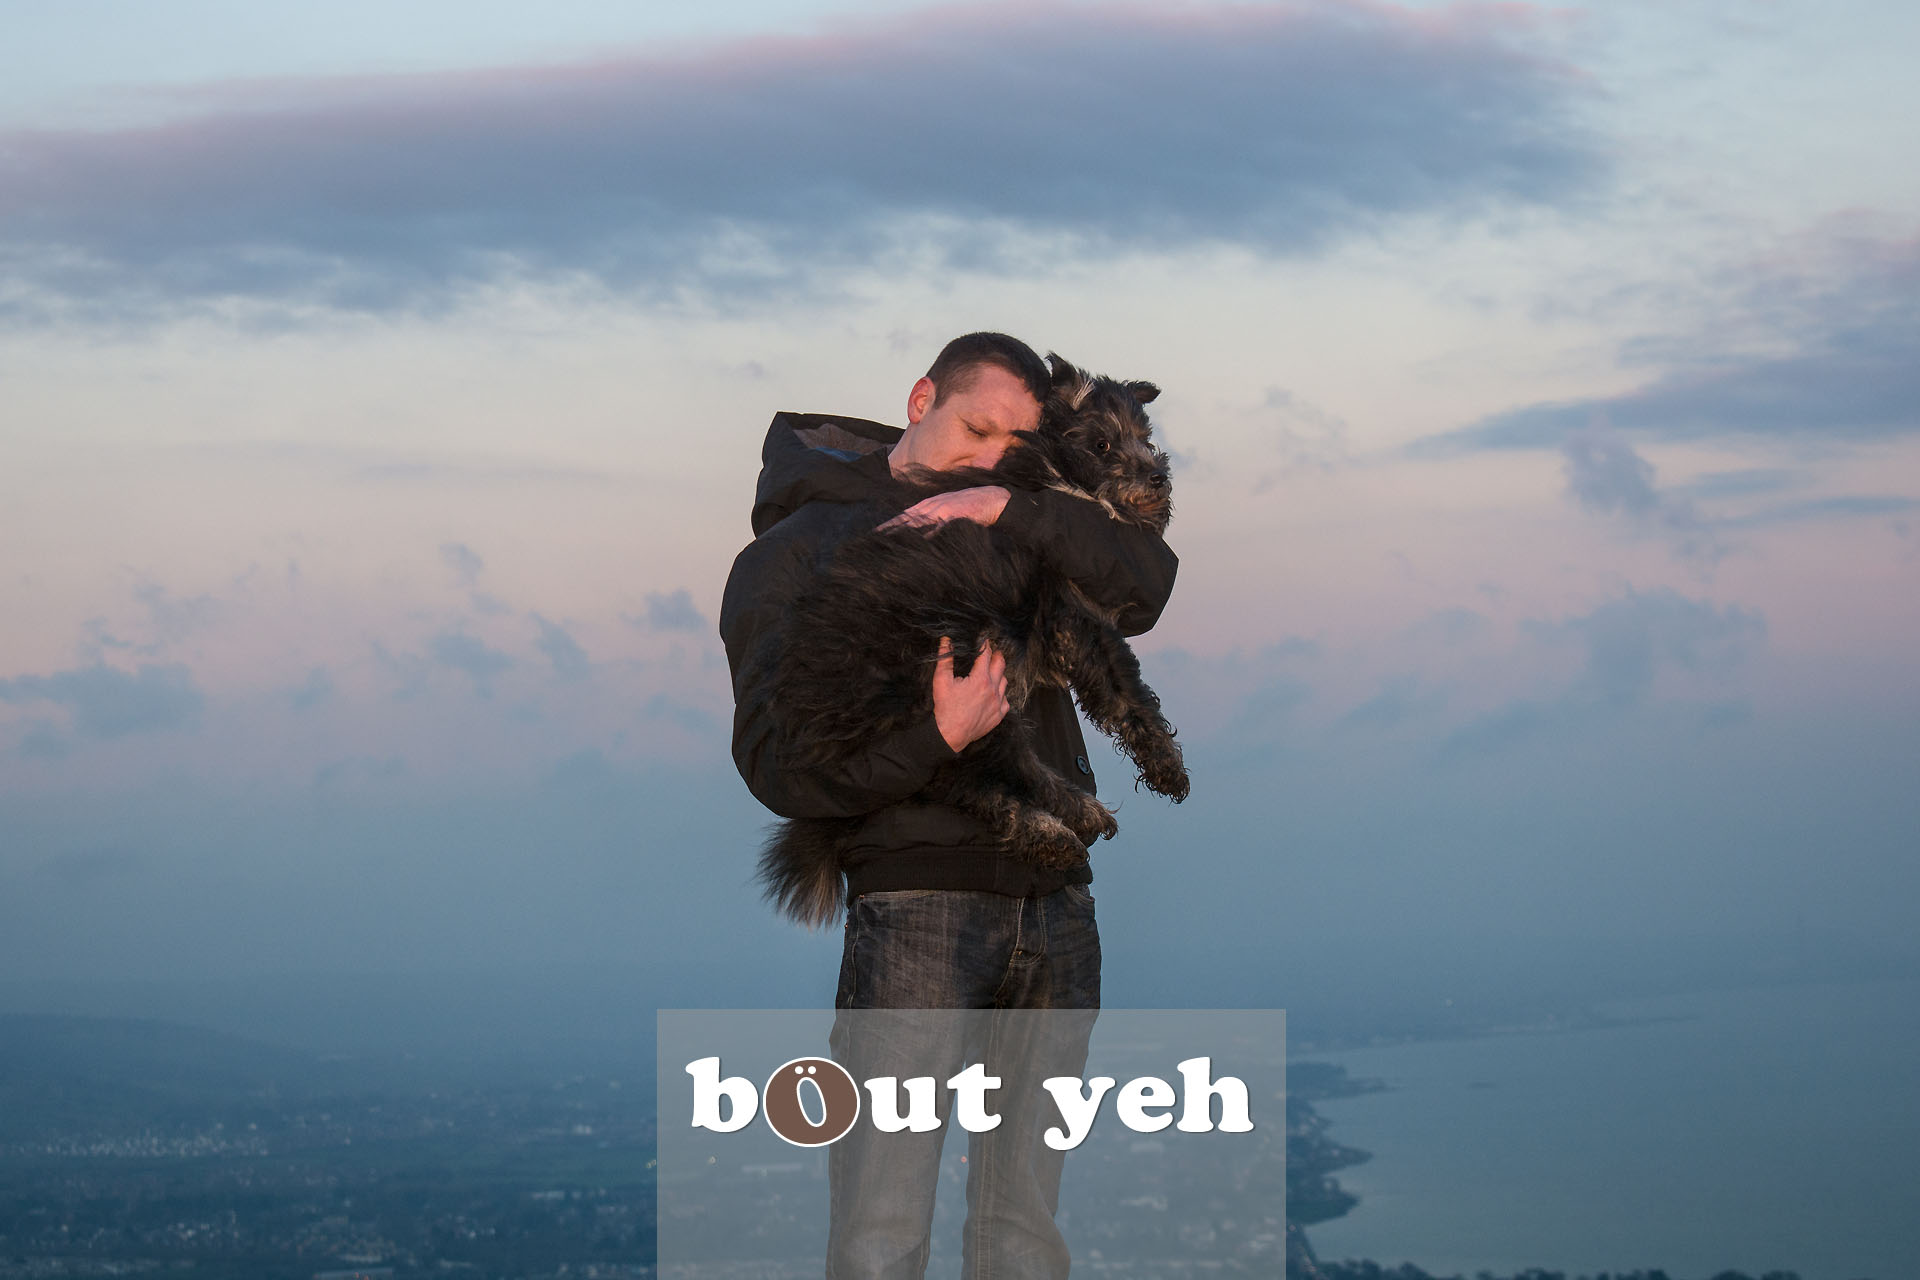 Man carries his dog for last walk on Cave Hill, Belfast, Northern Ireland. Photo 4111.